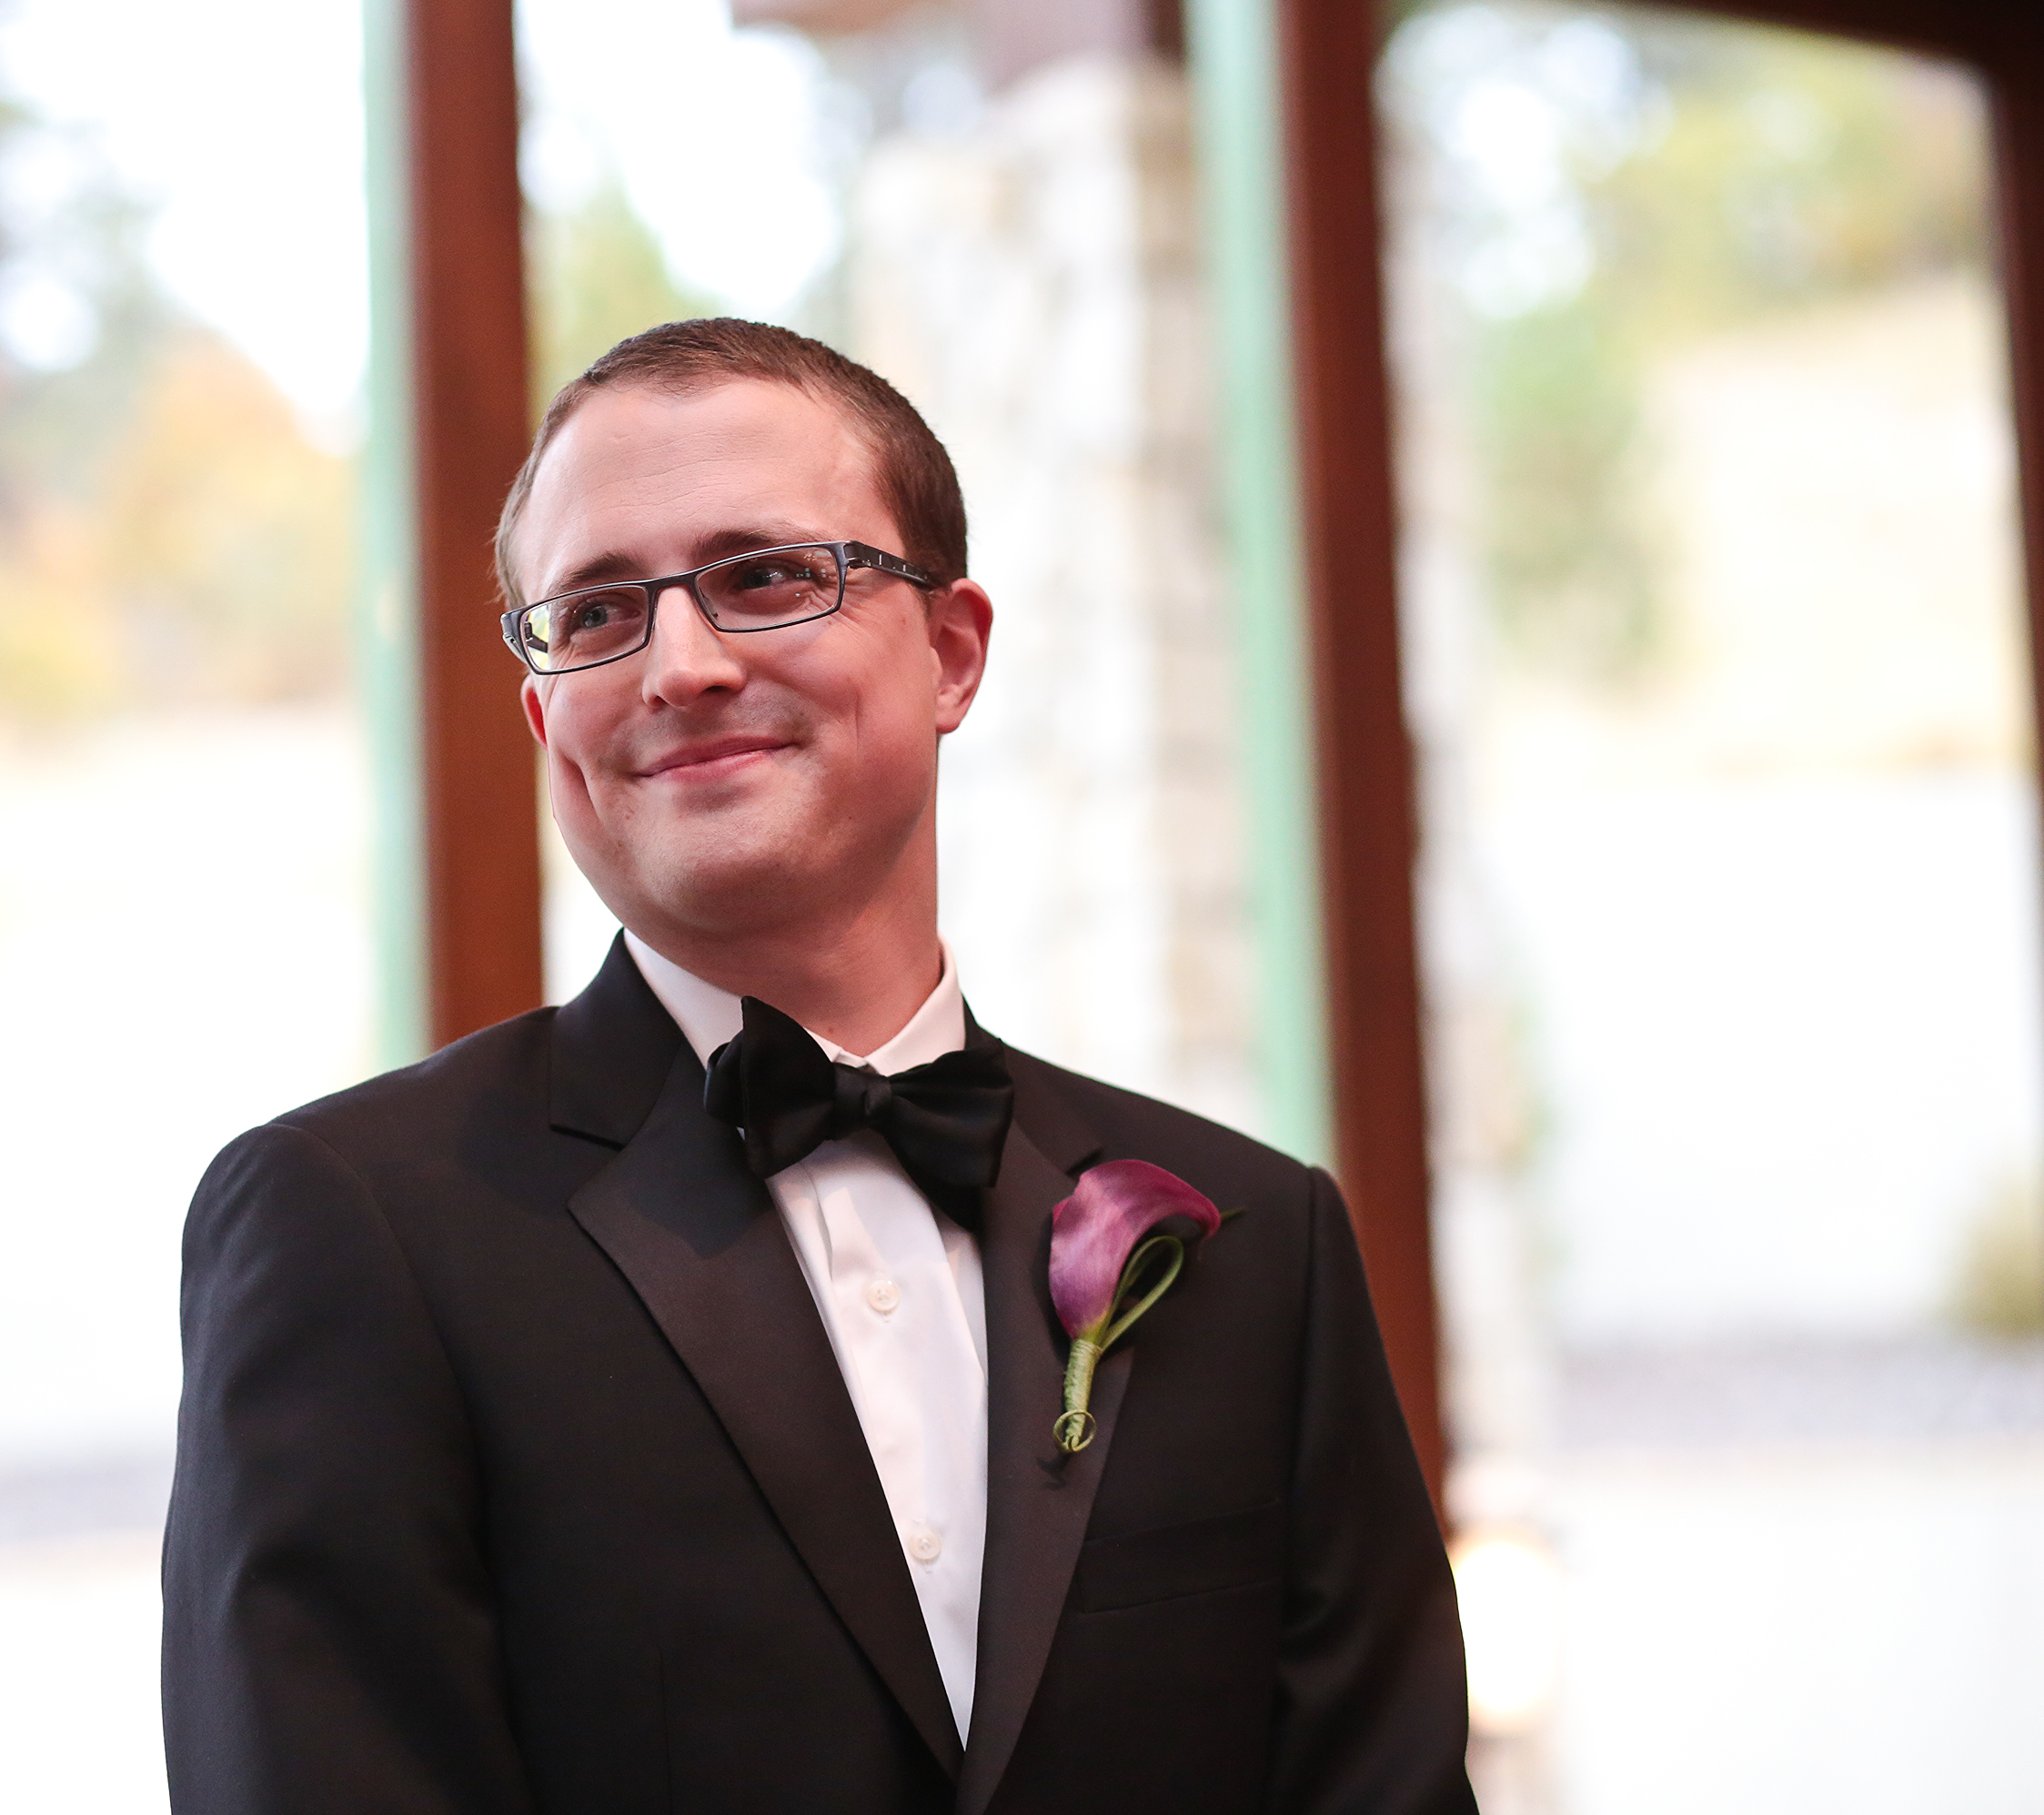 October 6, 2012: The day I tied my own bow tie. And got married.